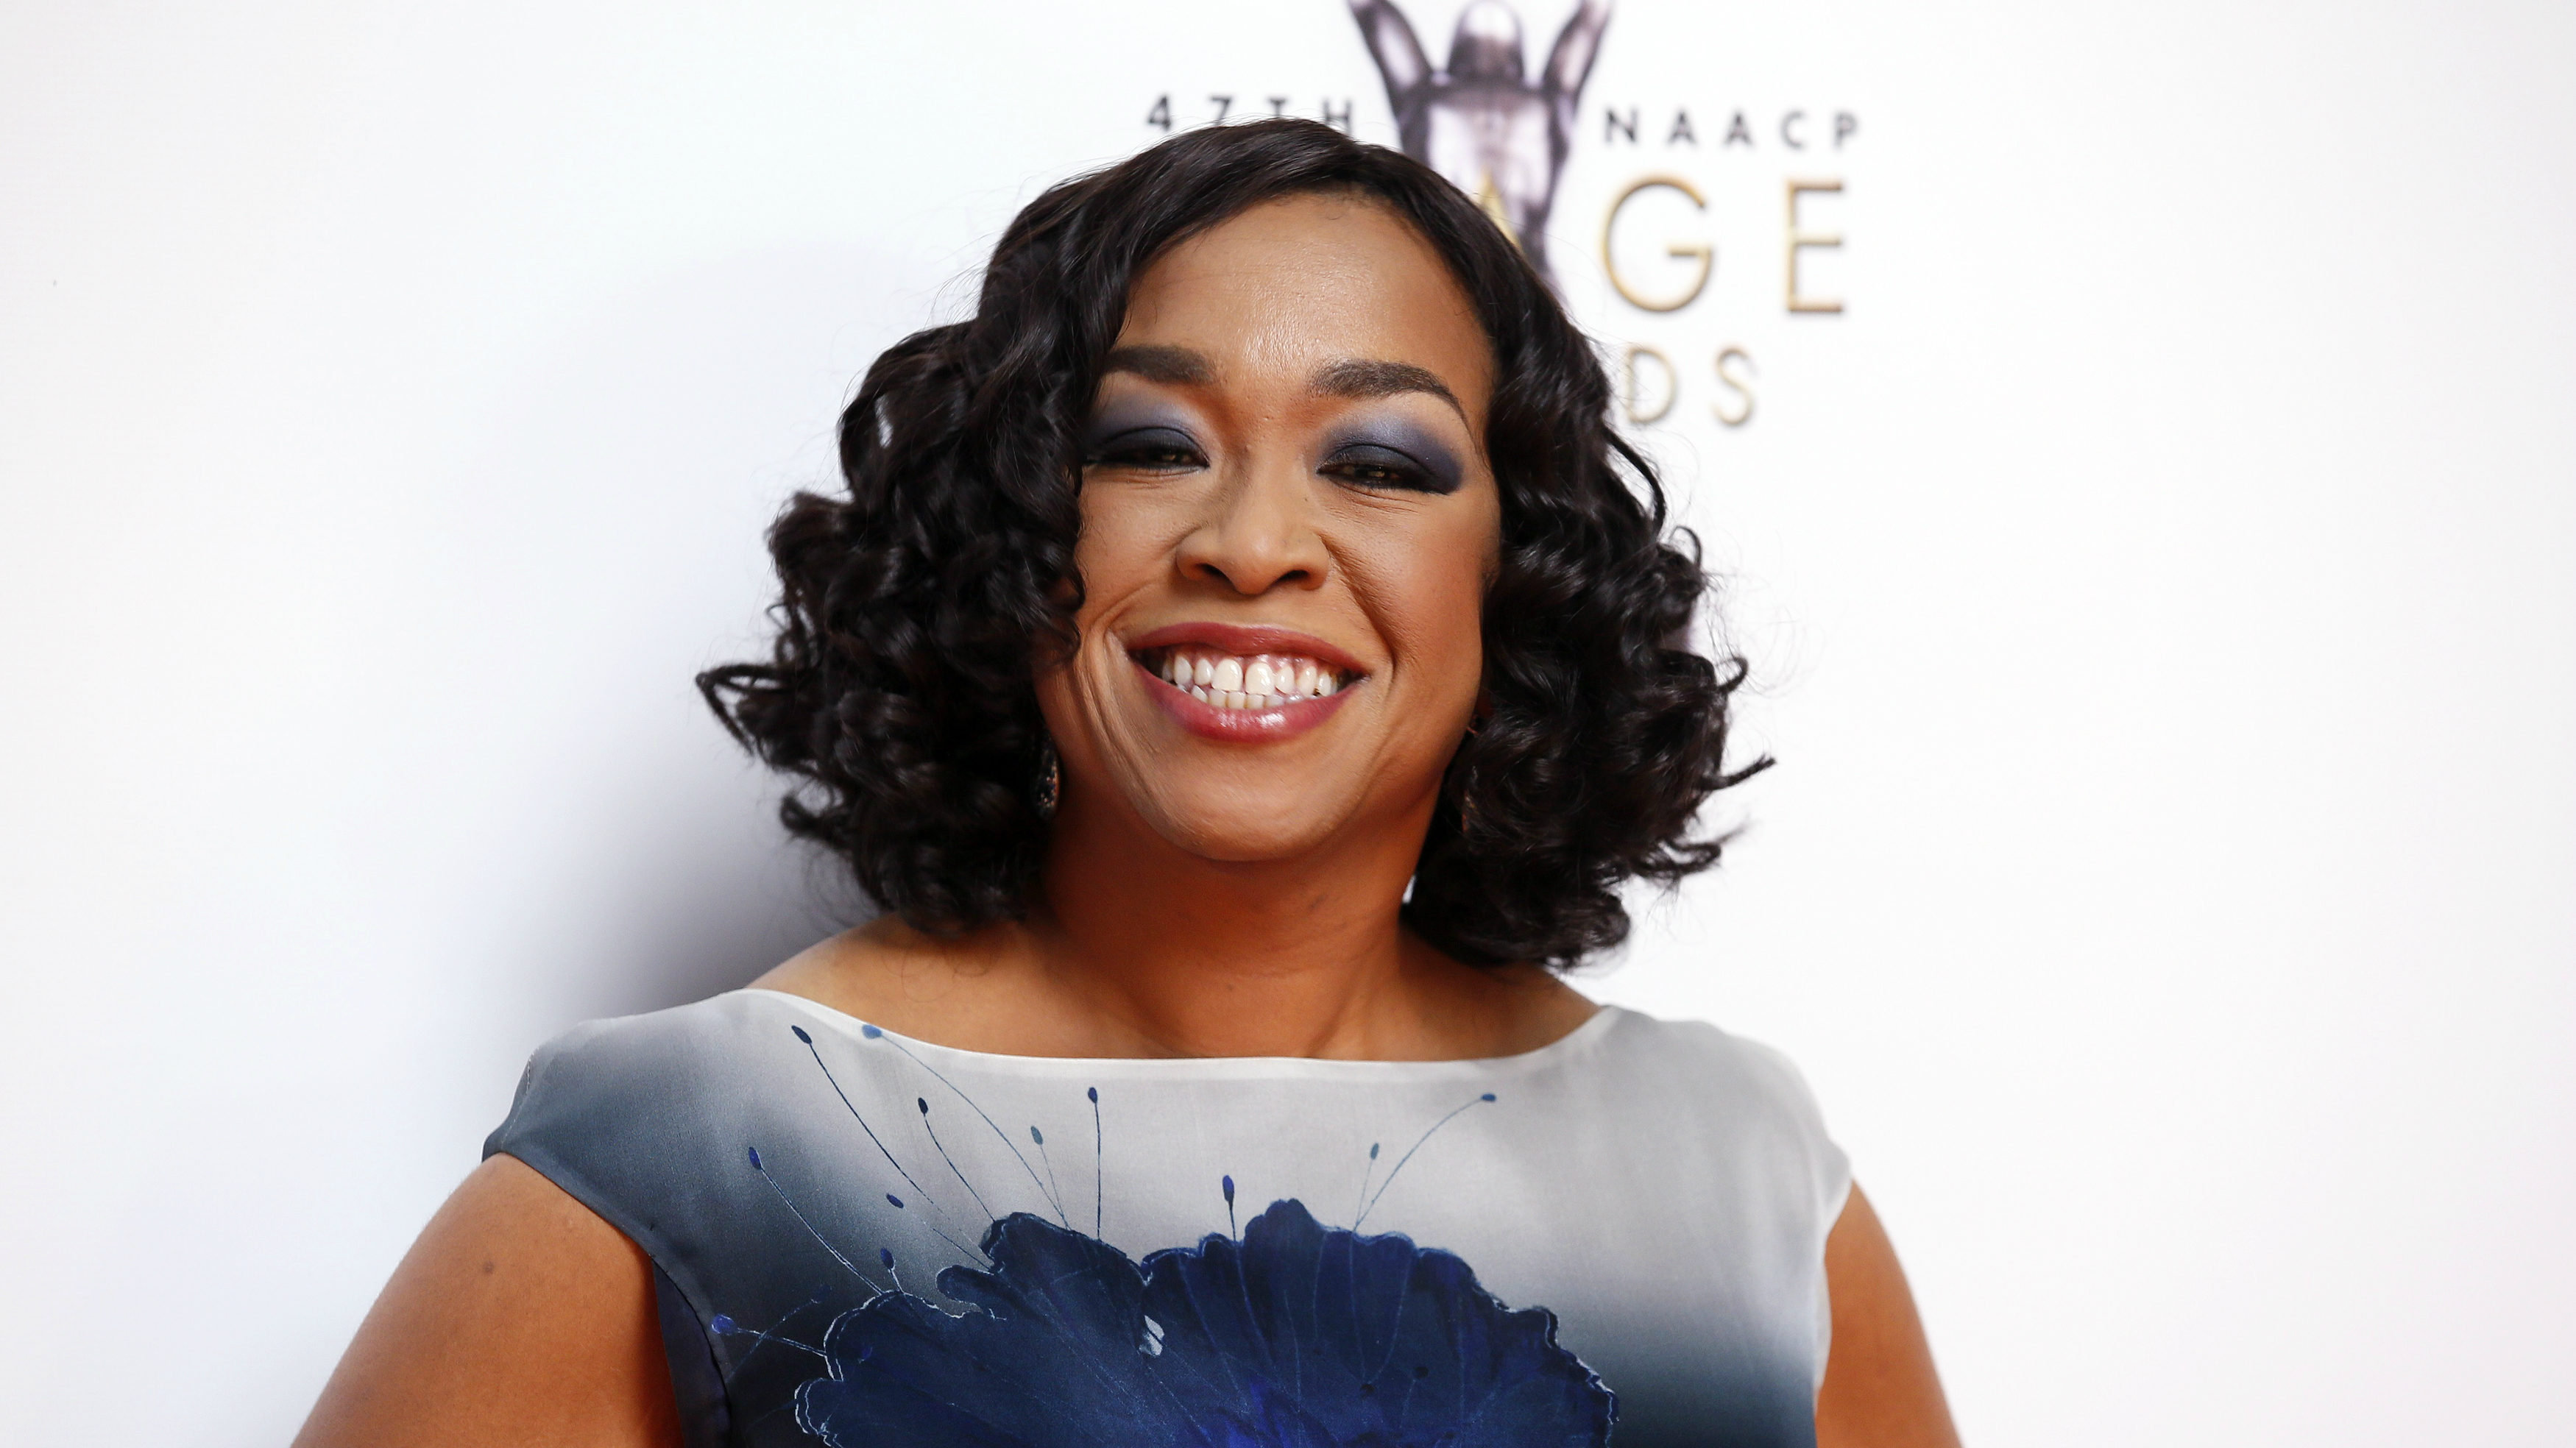 Shonda Rhimes at the NAACP awards.